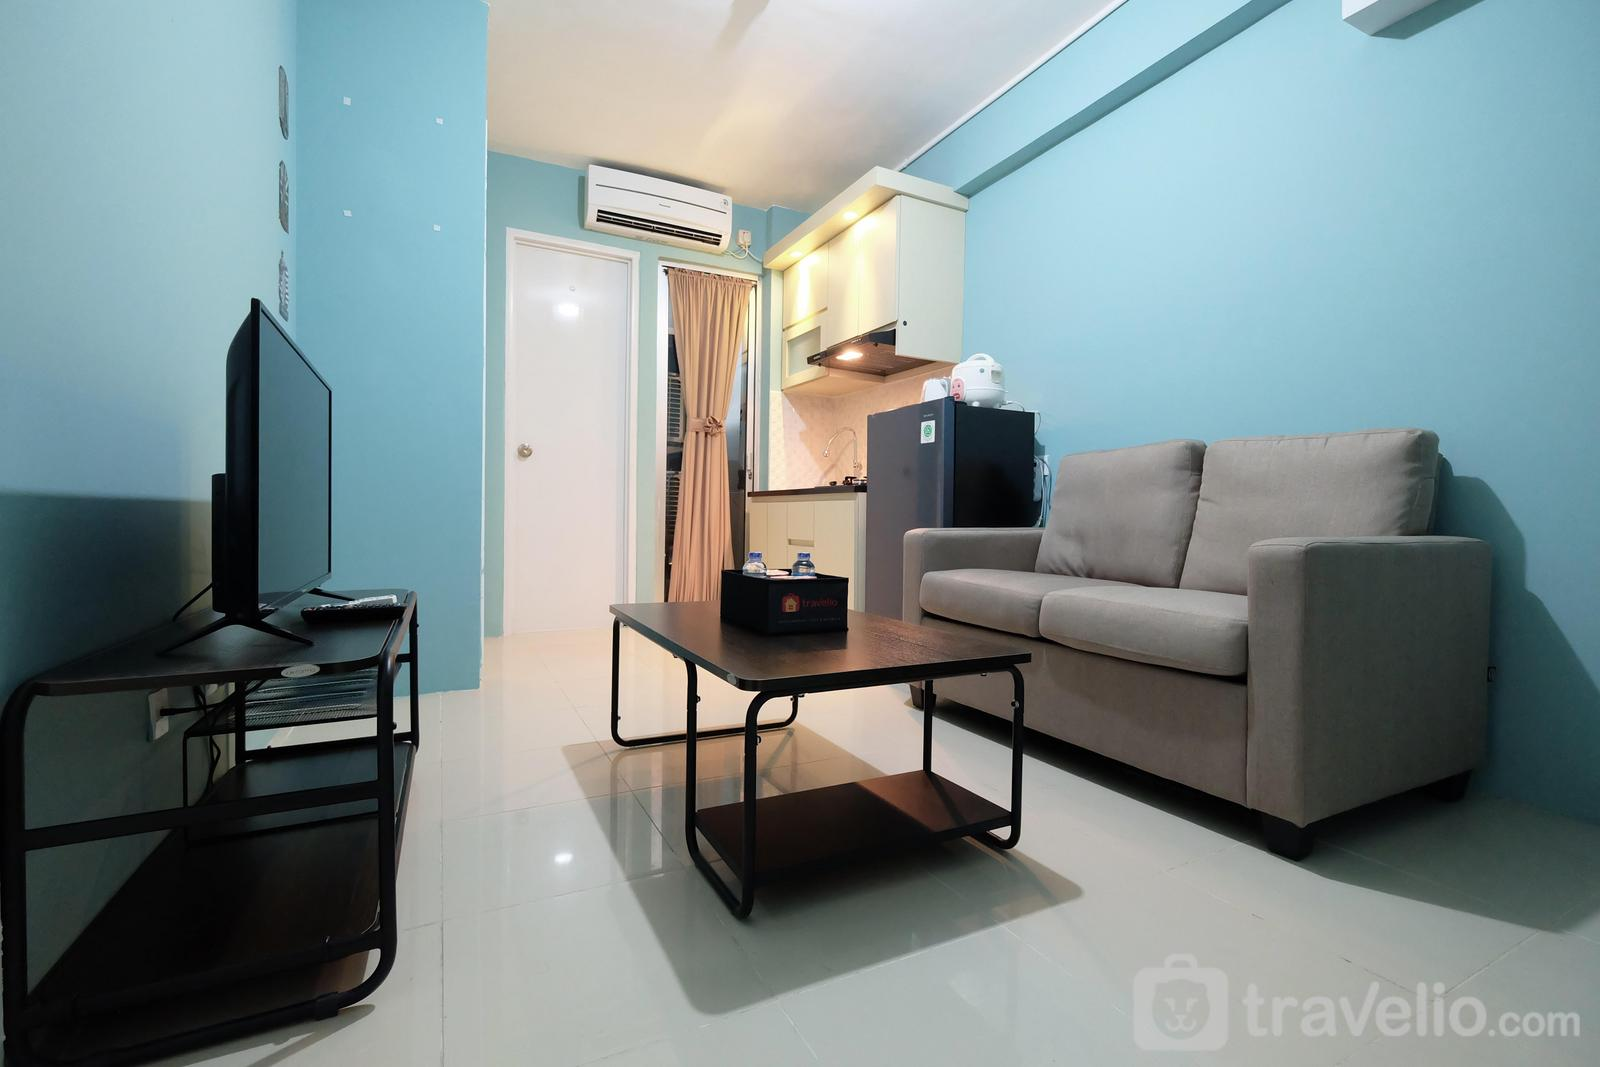 Bassura City Cipinang - Exclusive 2BR near Shopping Center Bassura City Apartment By Travelio